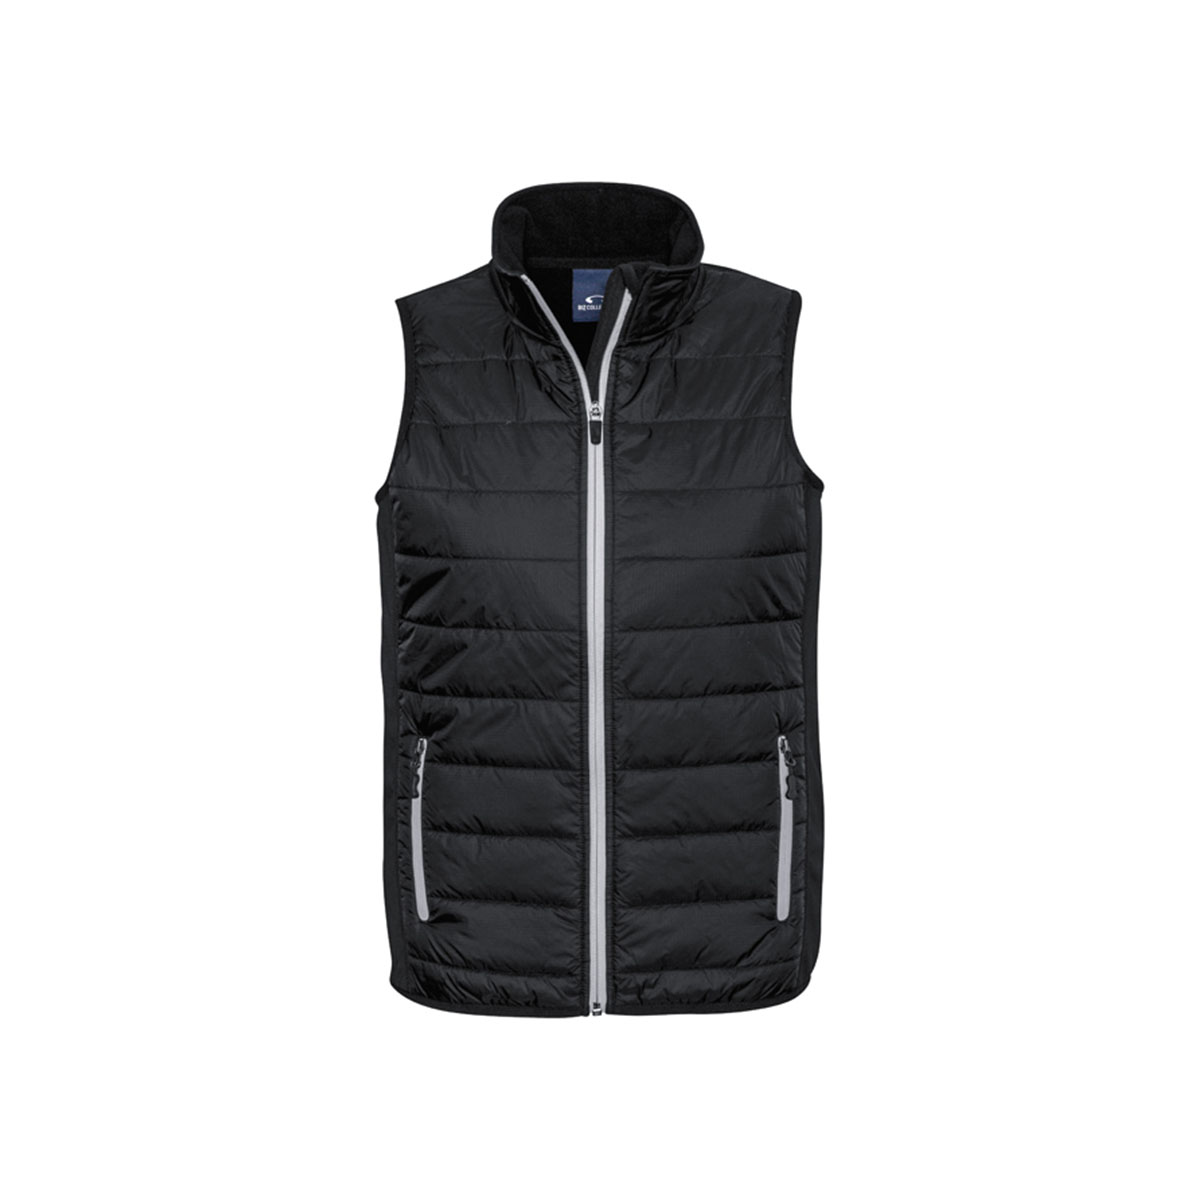 Mens Stealth Tech Vest-Black / Silver Grey